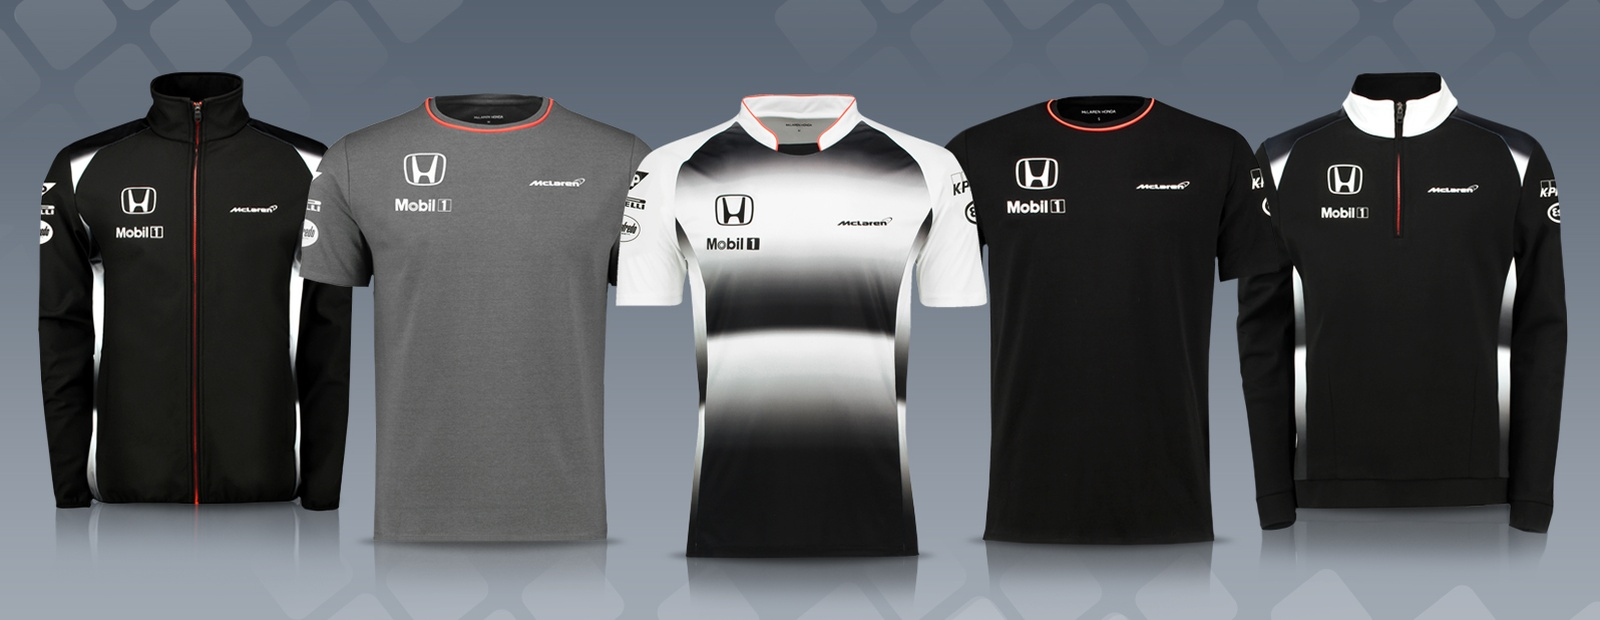 mclaren formula 1 - mclaren-honda launch all-new 2016 teamwear